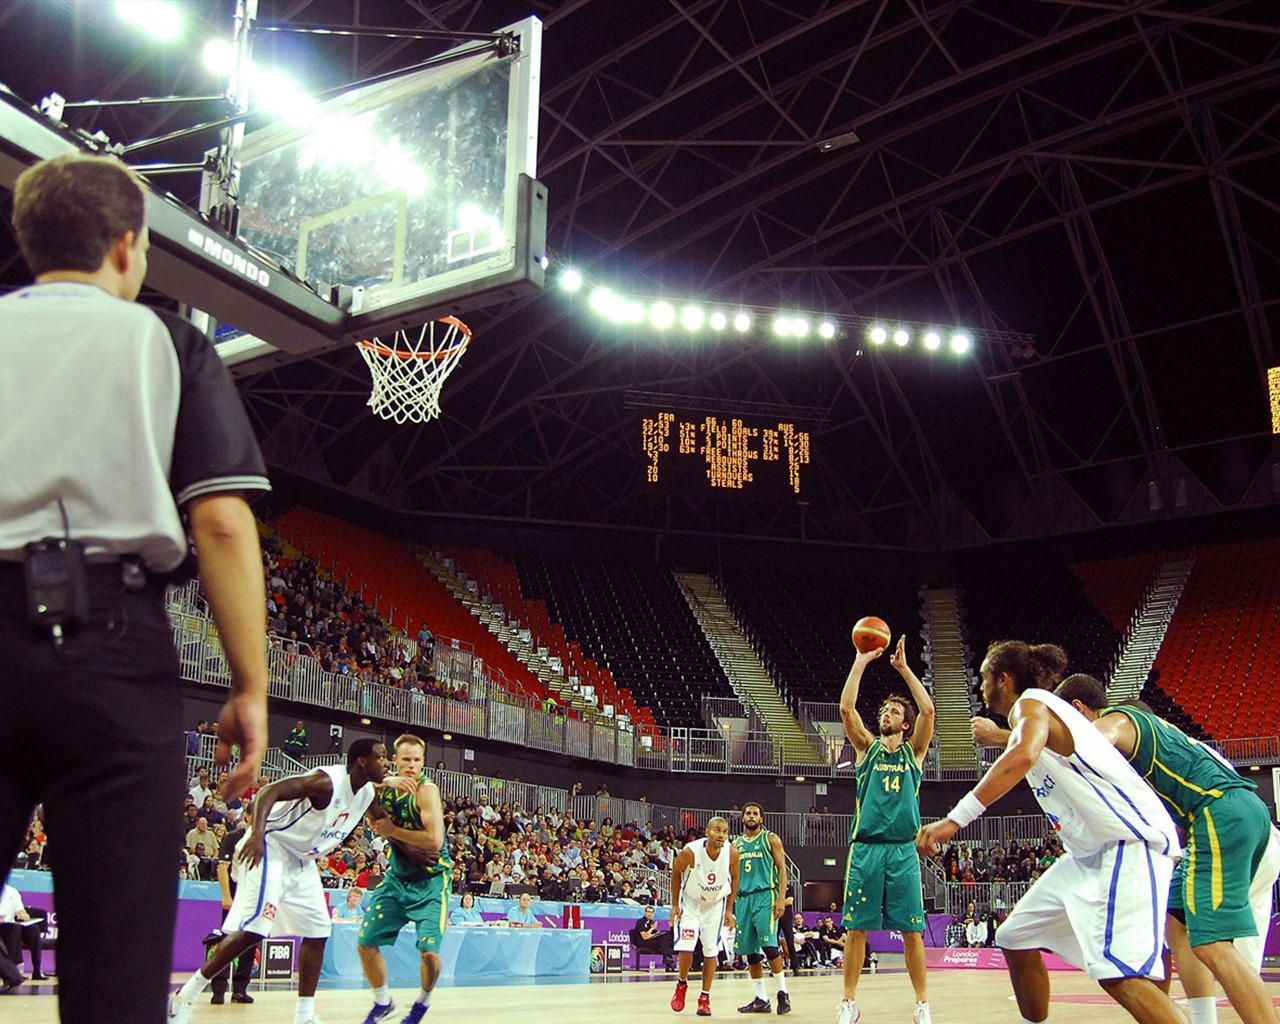 Basketball on the Olympic Park for 1280 x 1024 resolution